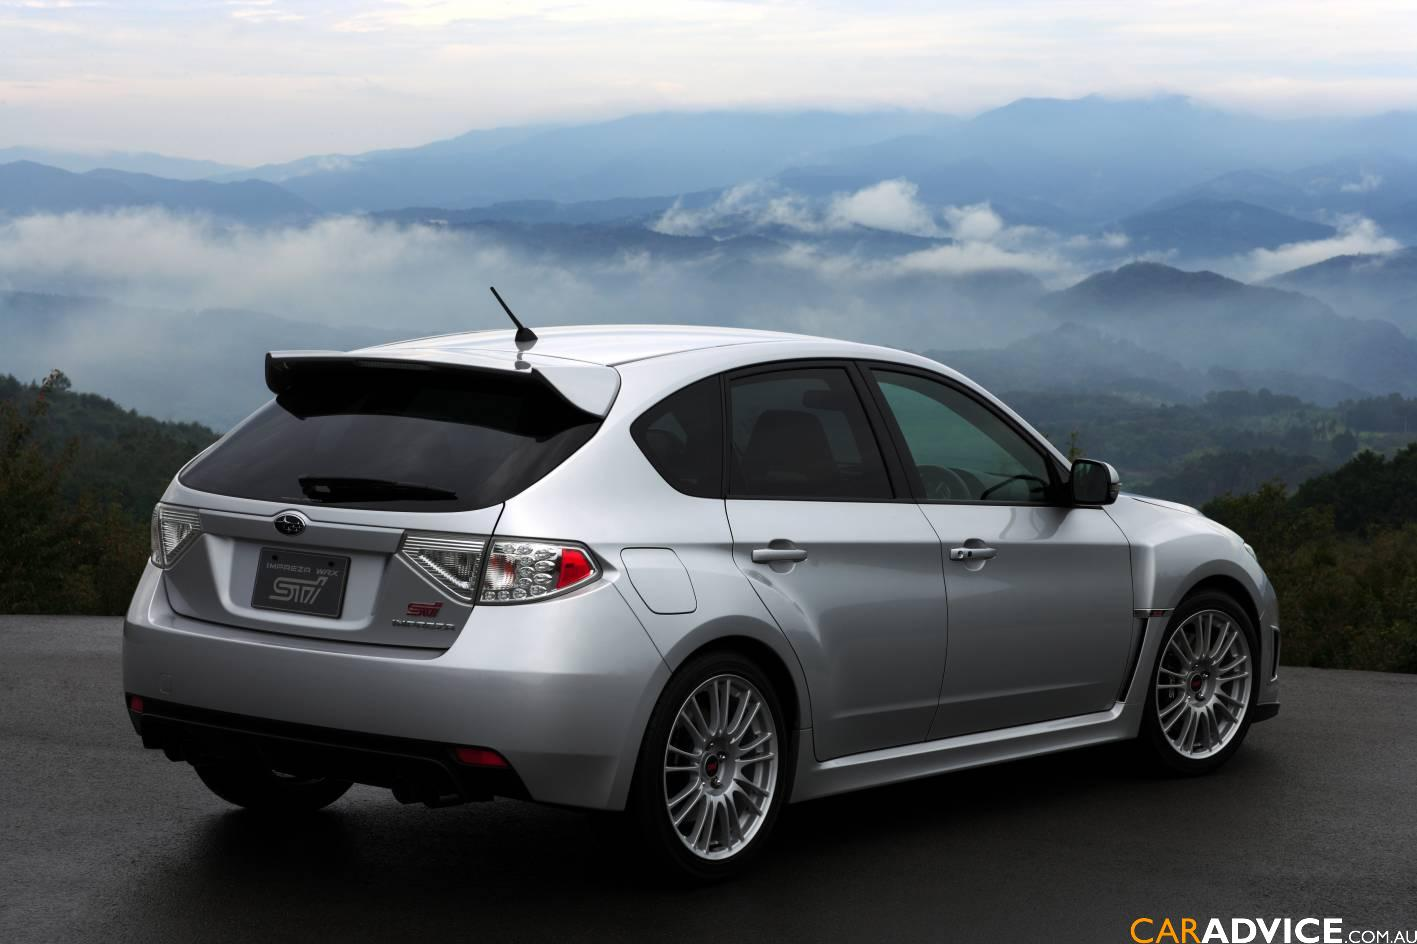 all new subaru impreza wrx sti launched photos 1 of 6. Black Bedroom Furniture Sets. Home Design Ideas